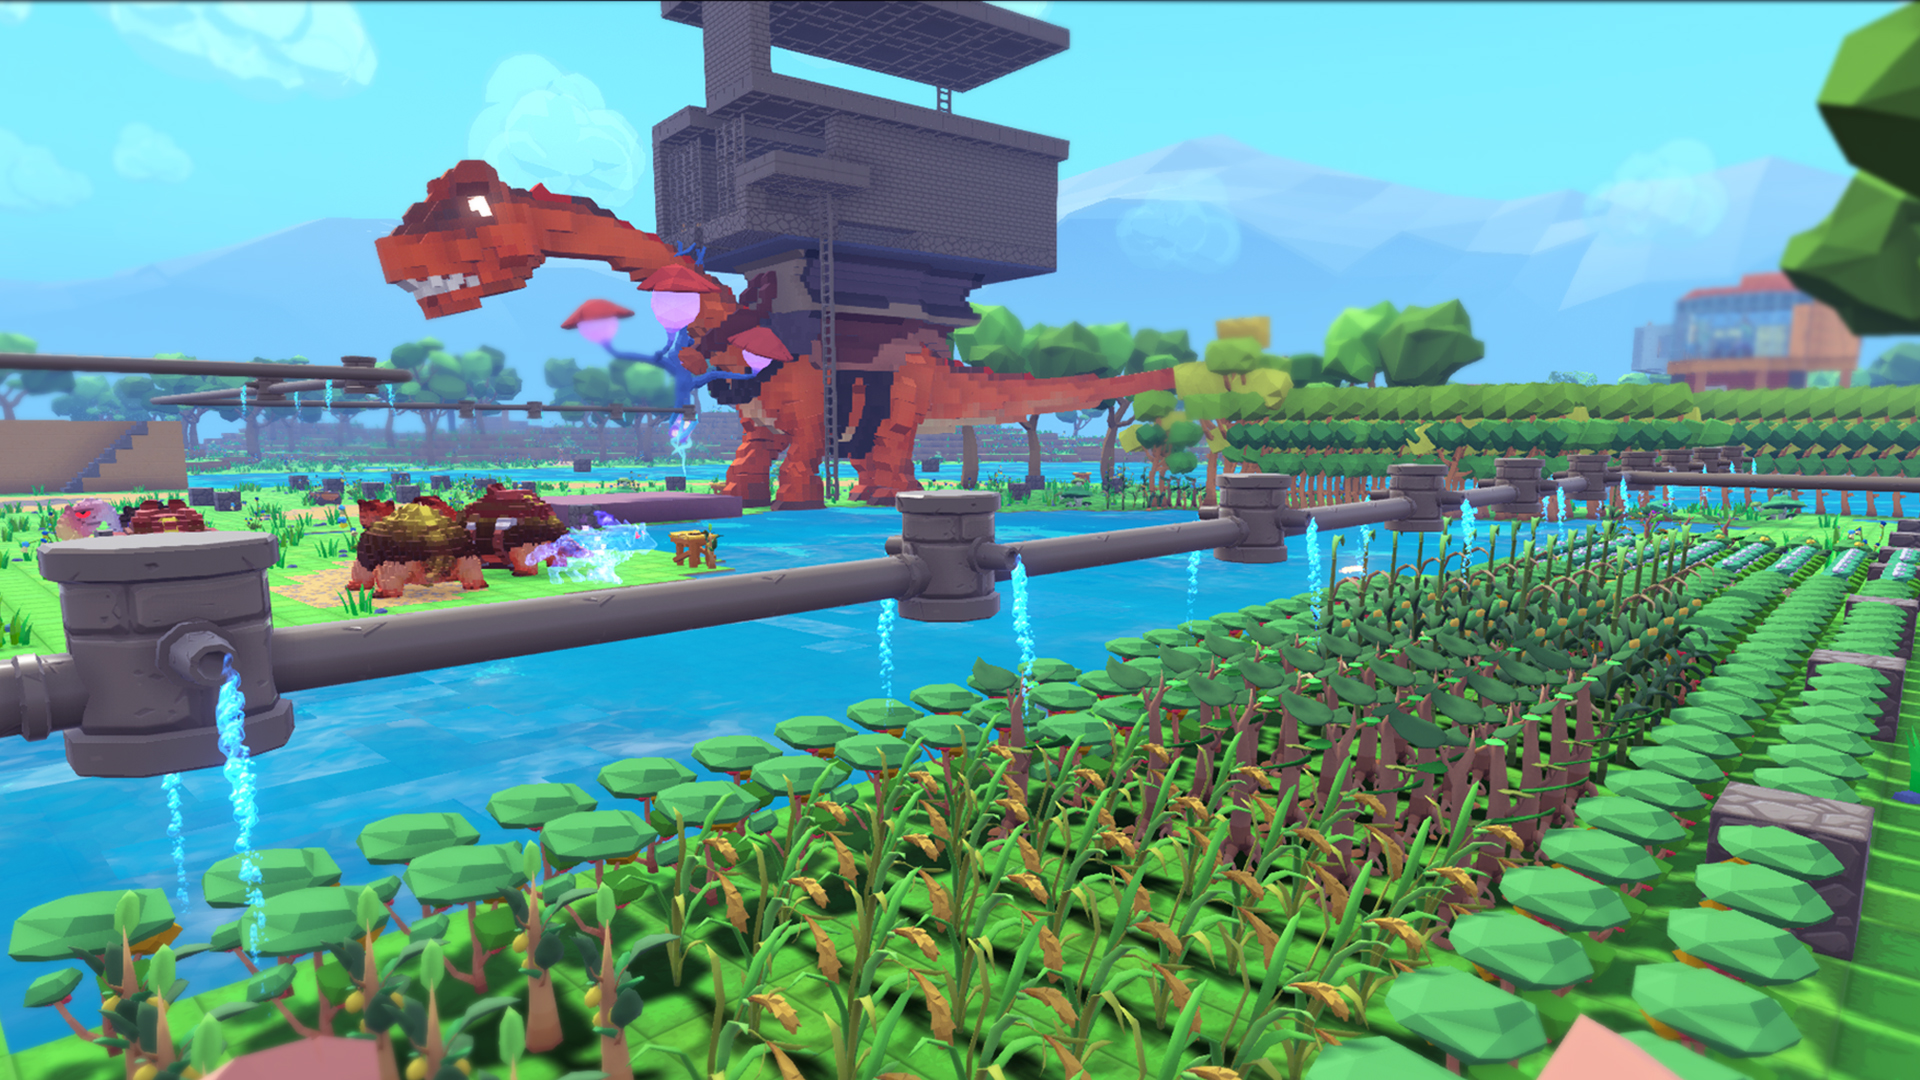 PixARK is Heading to Steam in March